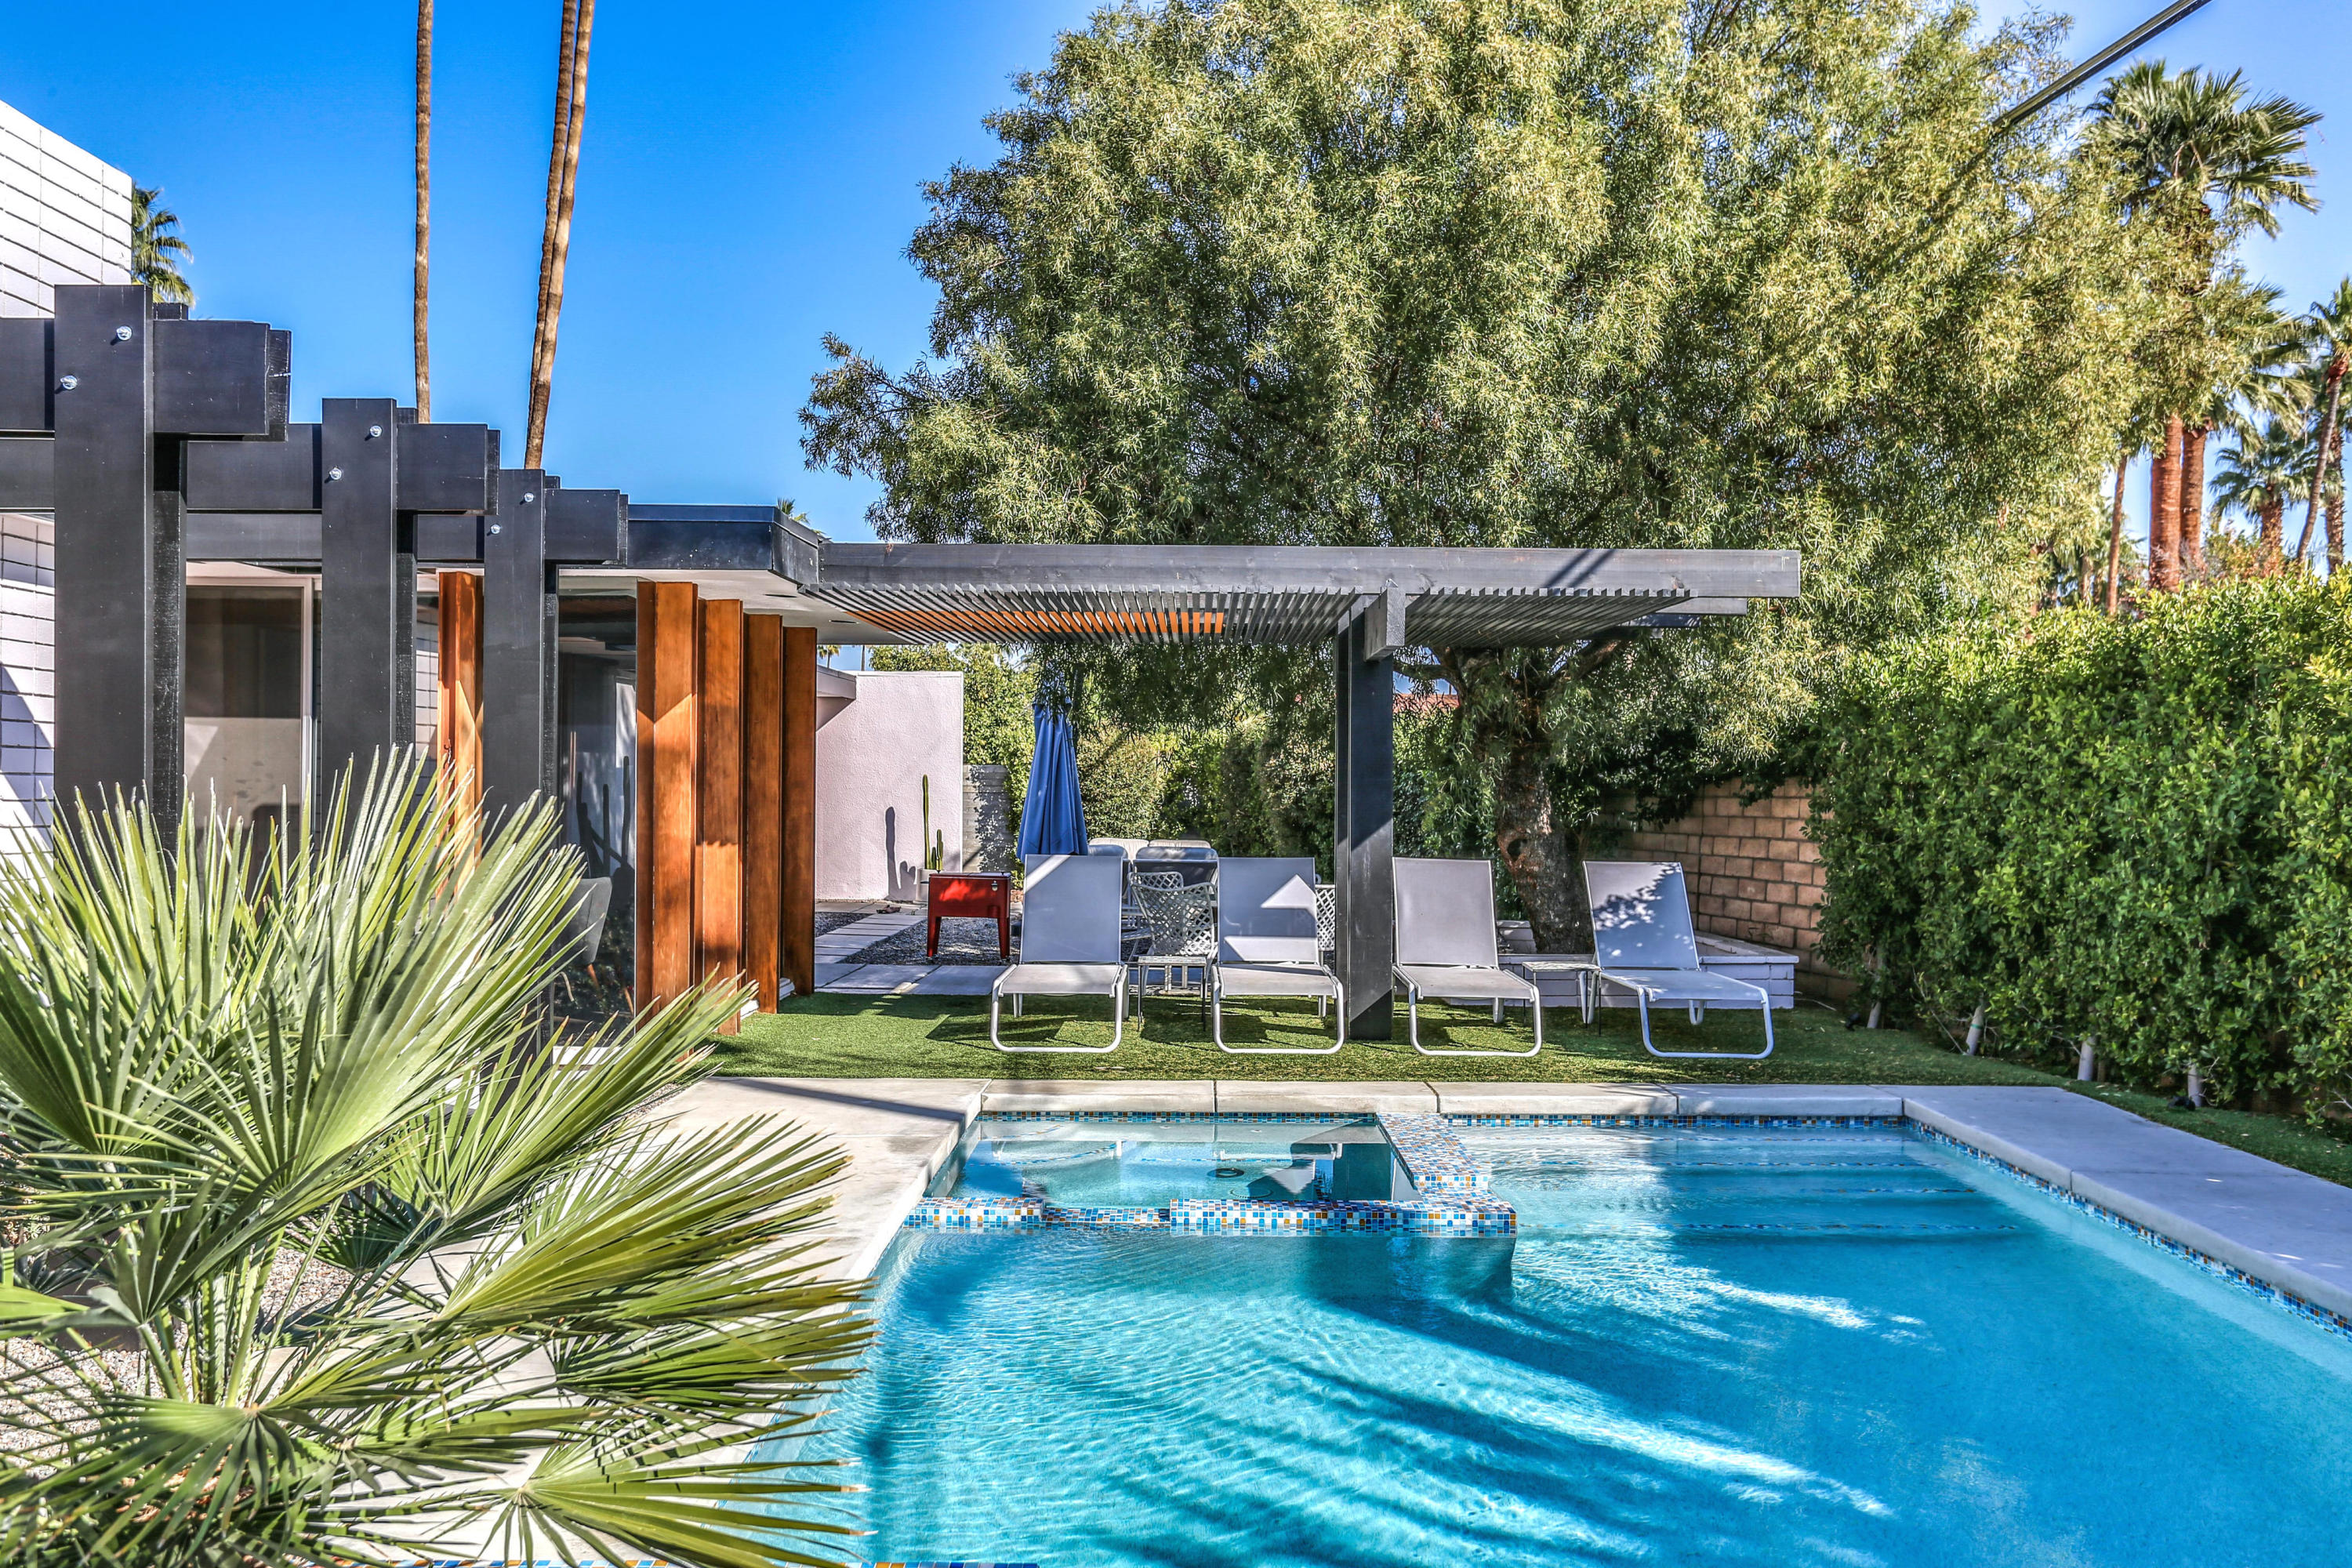 1300 S Sagebrush Road, Palm Springs, California 92264, 3 Bedrooms Bedrooms, ,2 BathroomsBathrooms,Residential,For Sale,1300 S Sagebrush Road,219039111